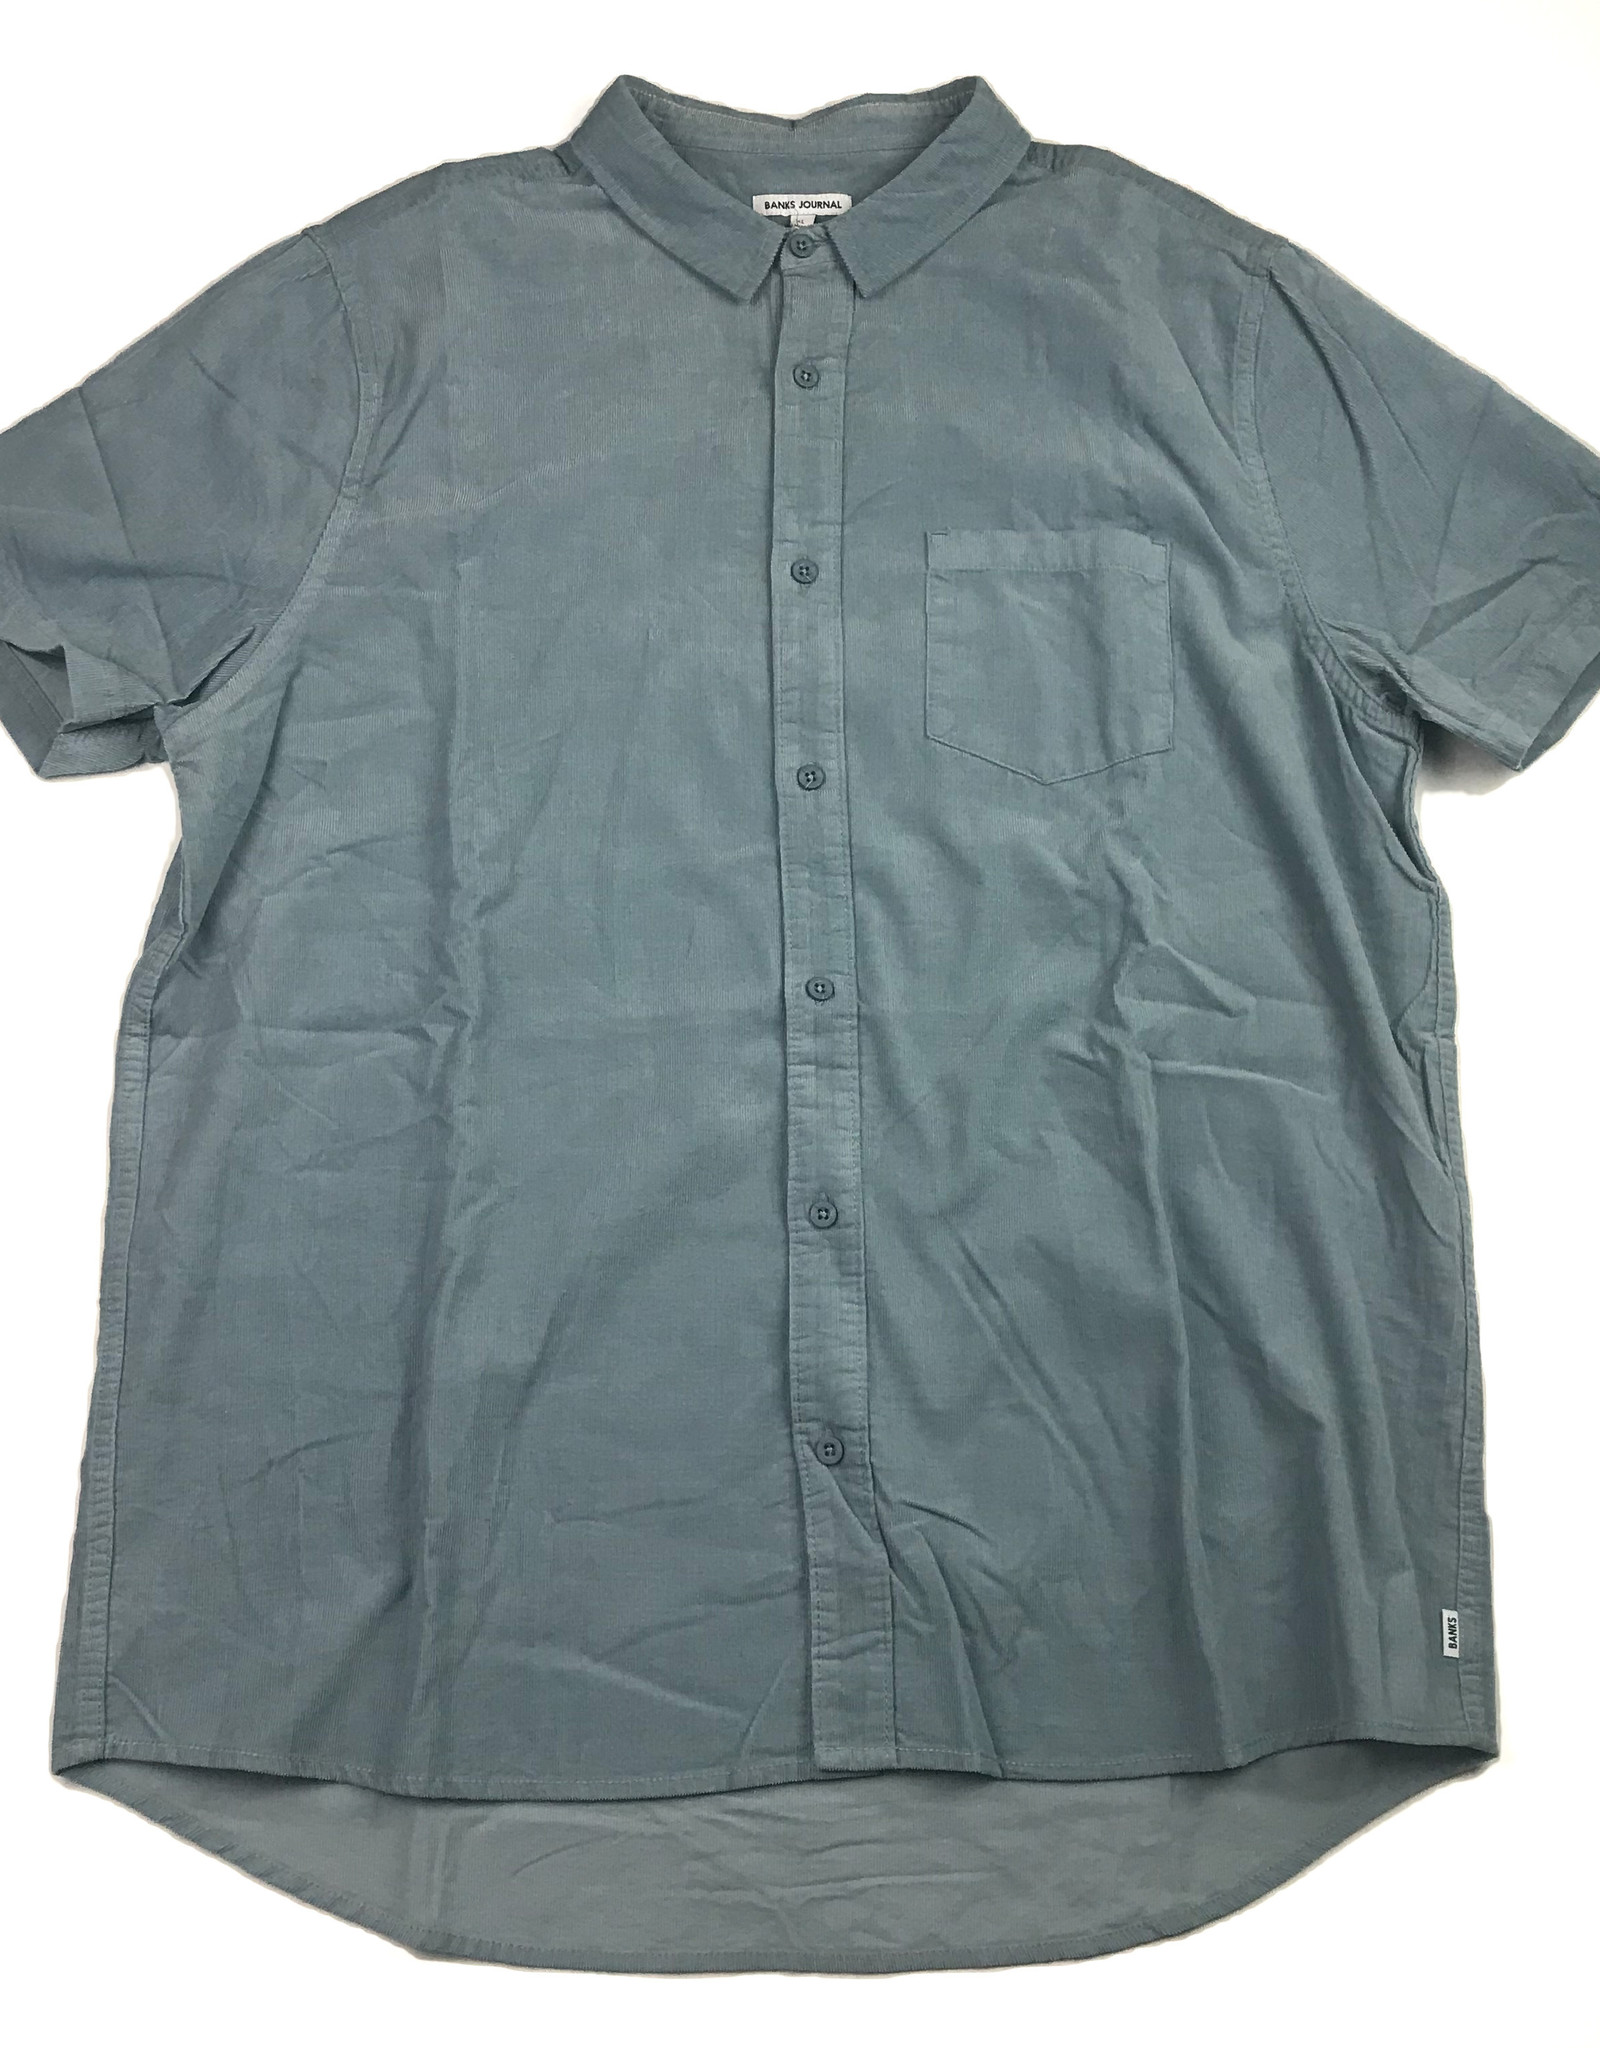 BANKS JOURNAL BANKS ROY S/S BUTTON - DUST BLUE